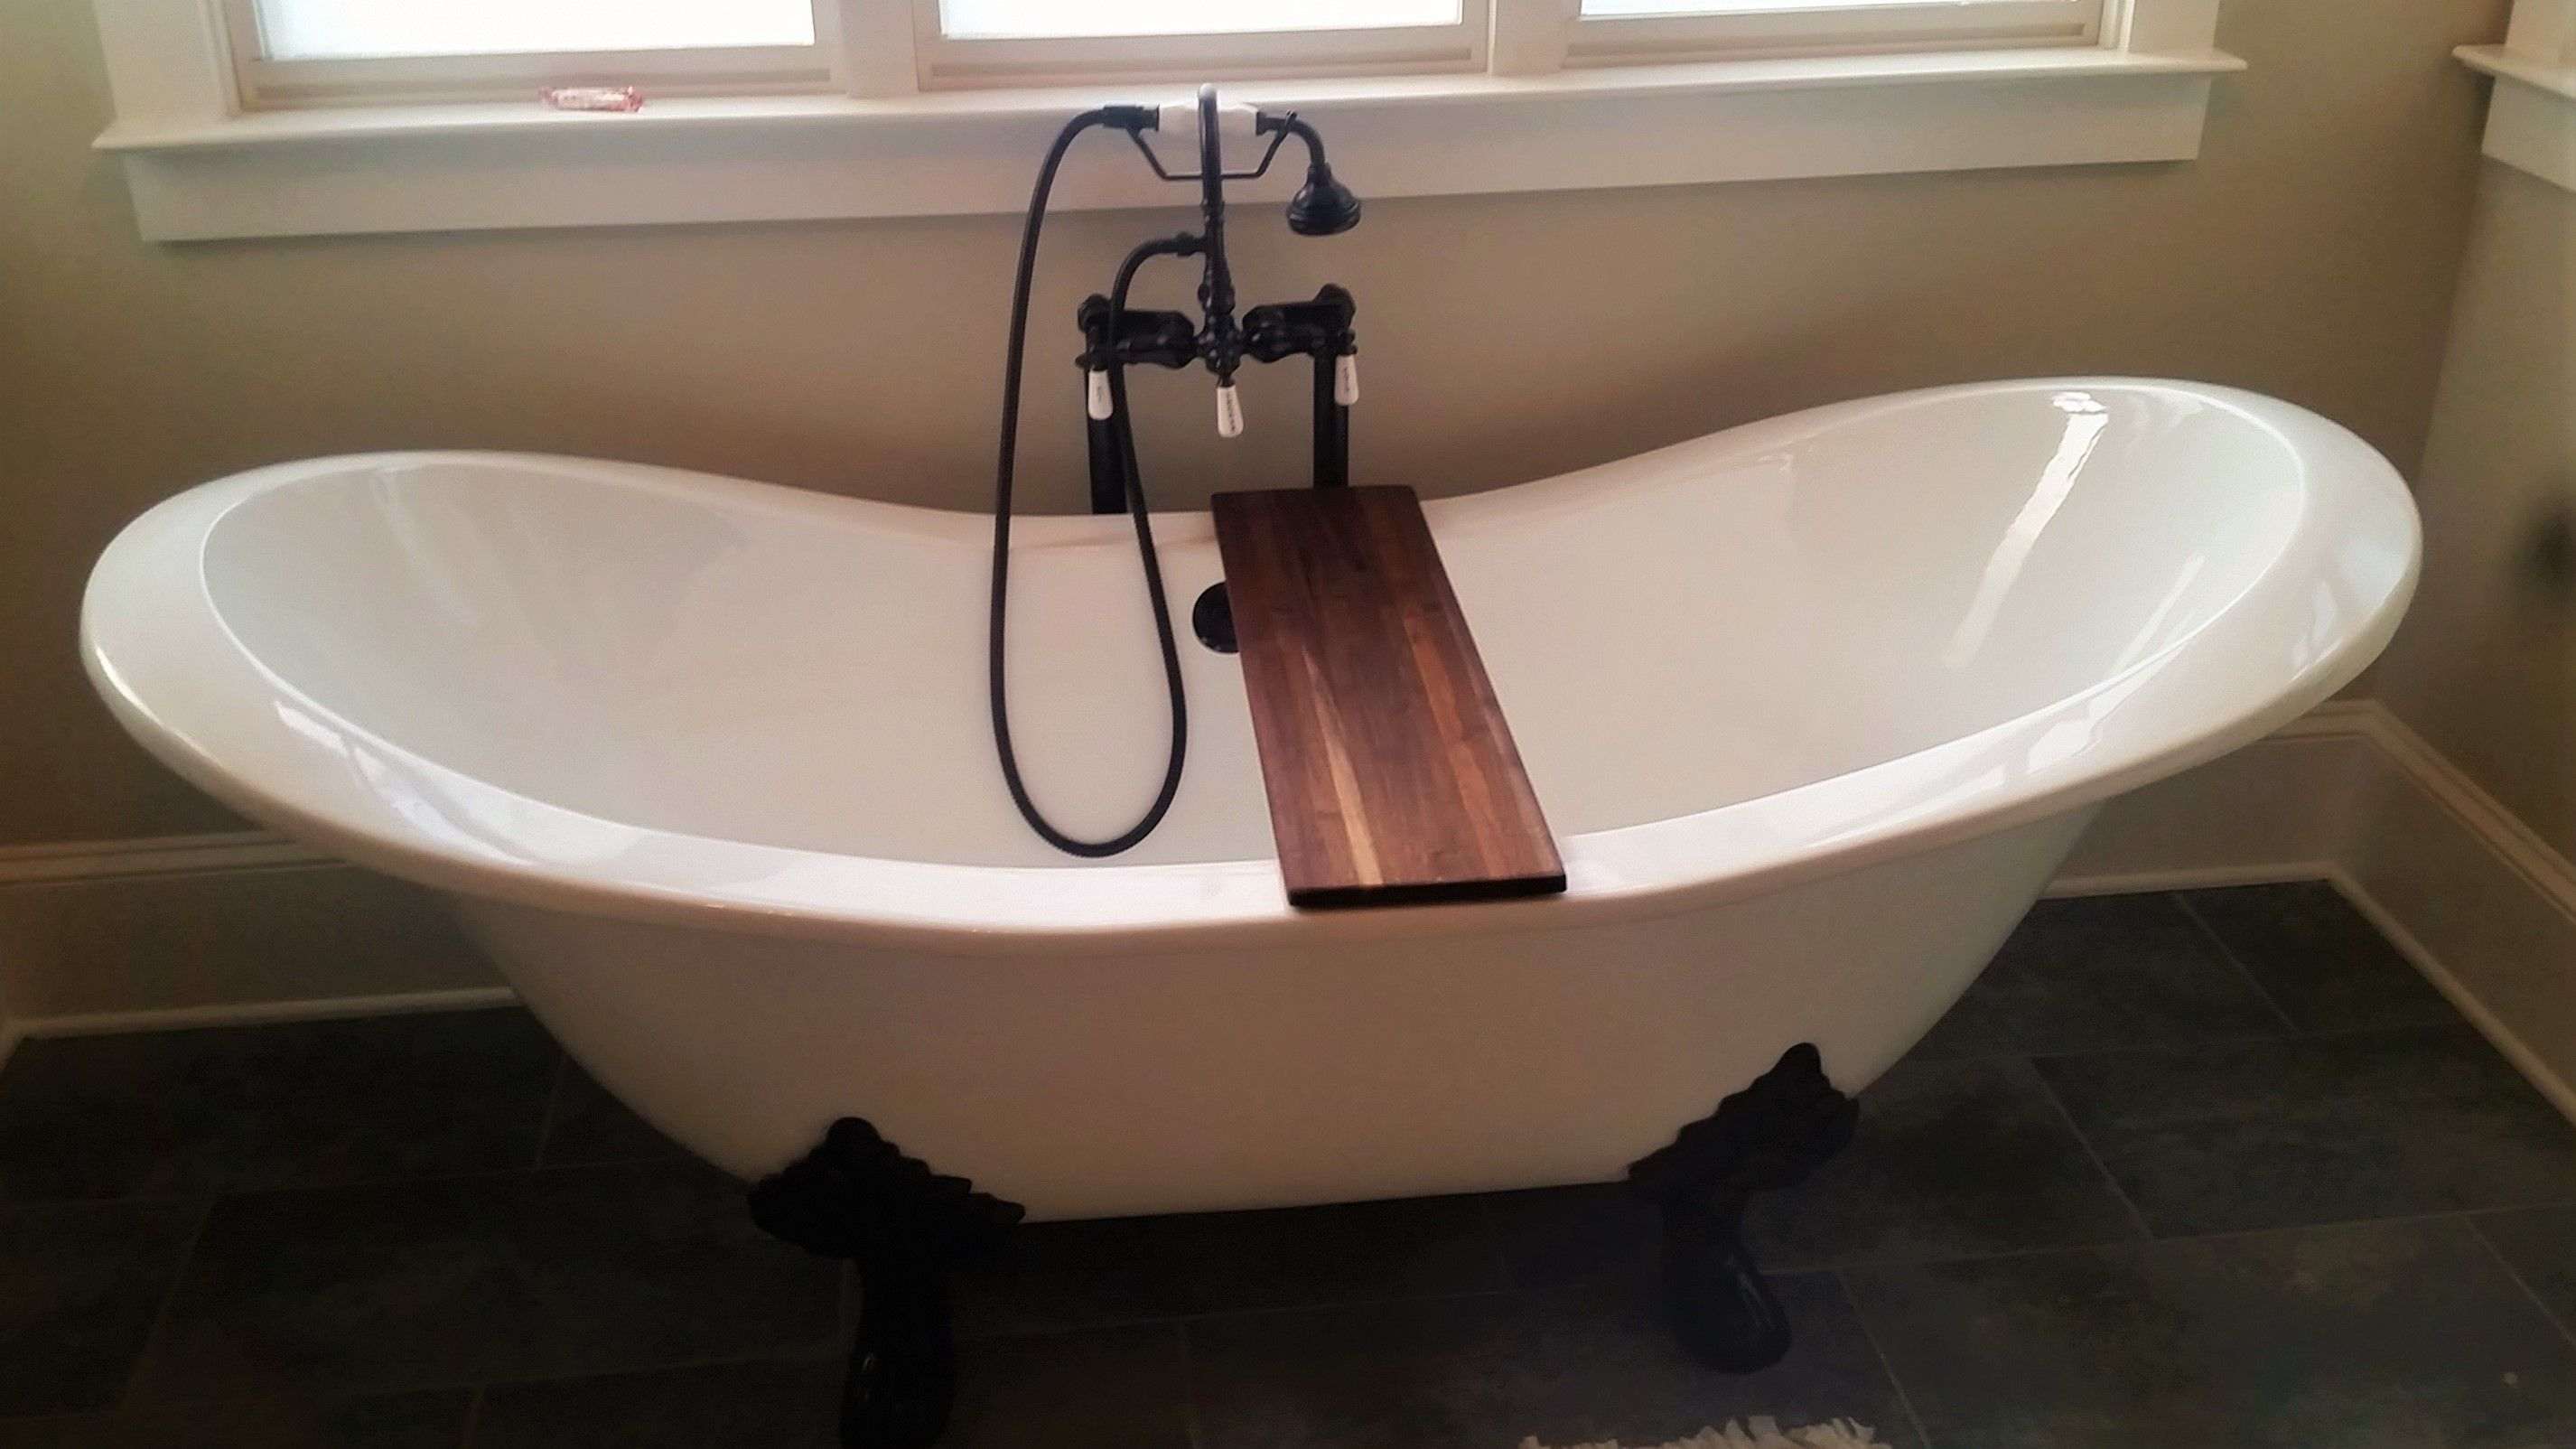 Buy a Hand Made Bathtub Caddy In Edge Grain Black Walnut, made to ...